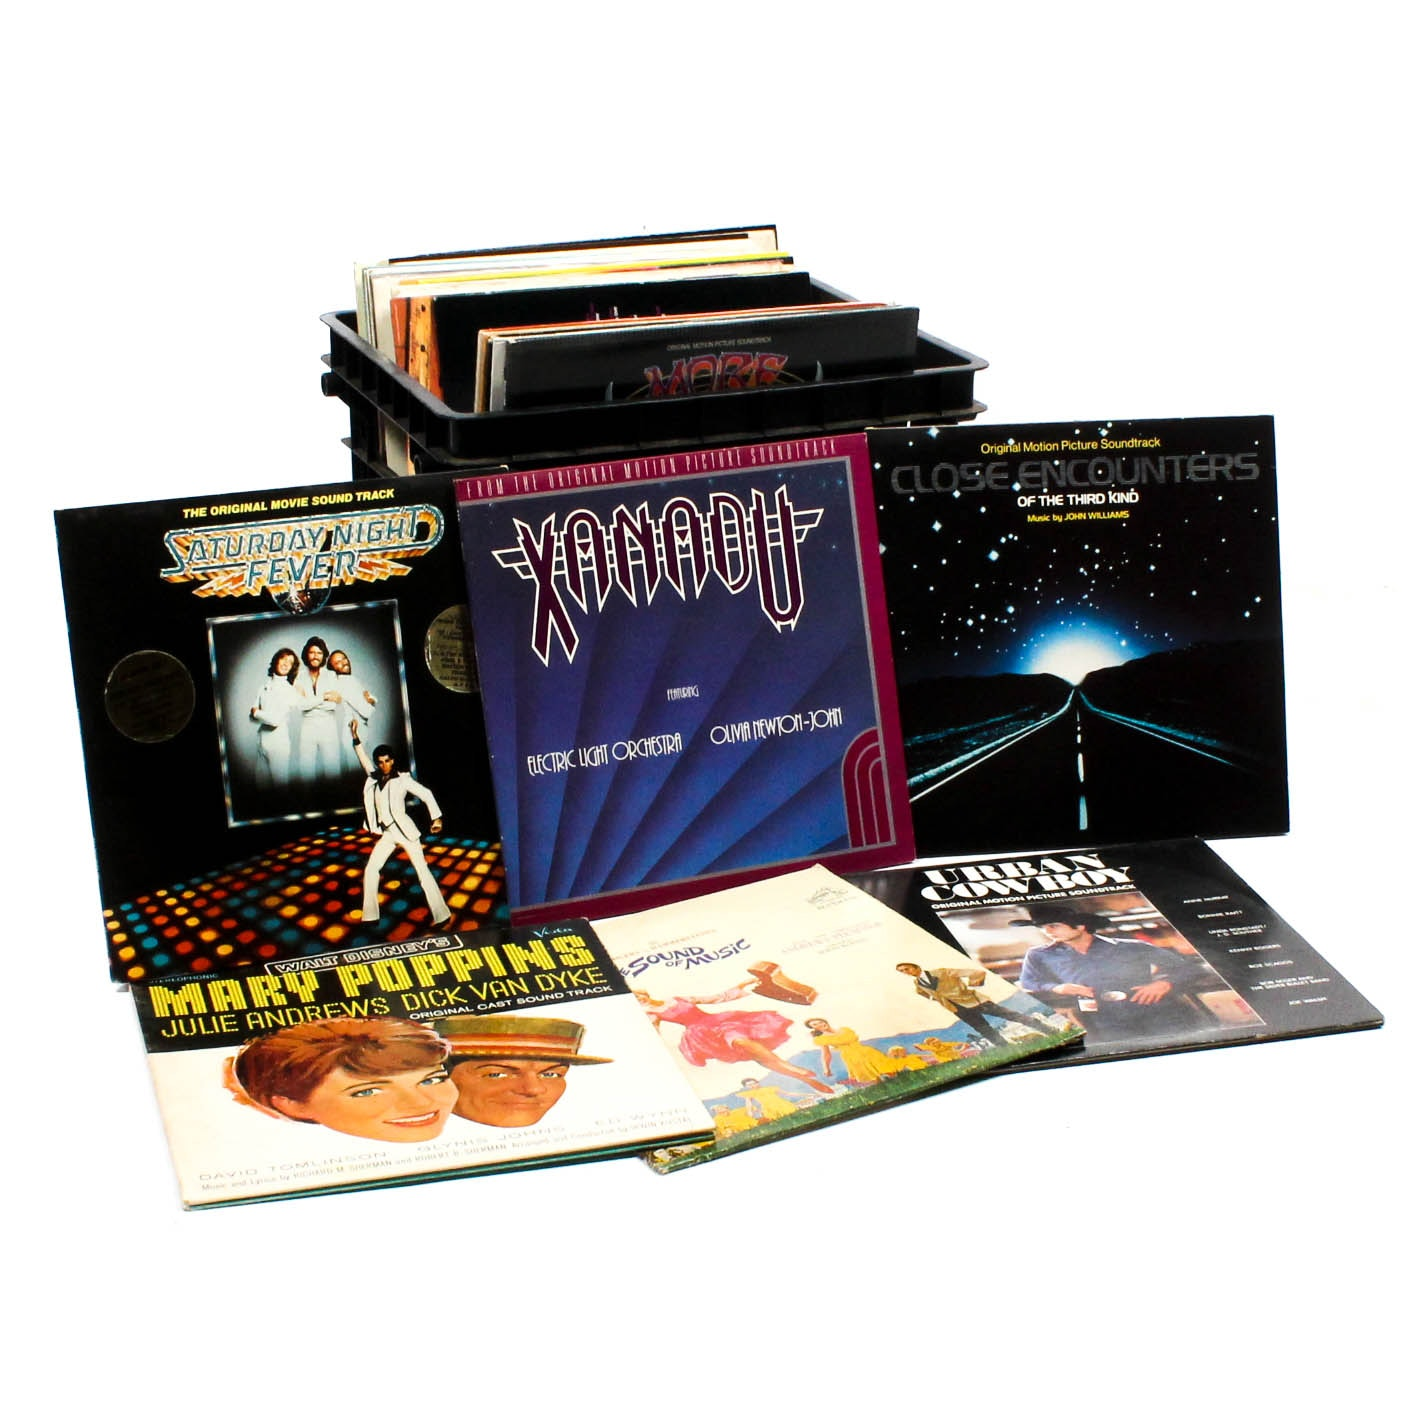 Soundtracks, Showtunes and Musicals Record Albums